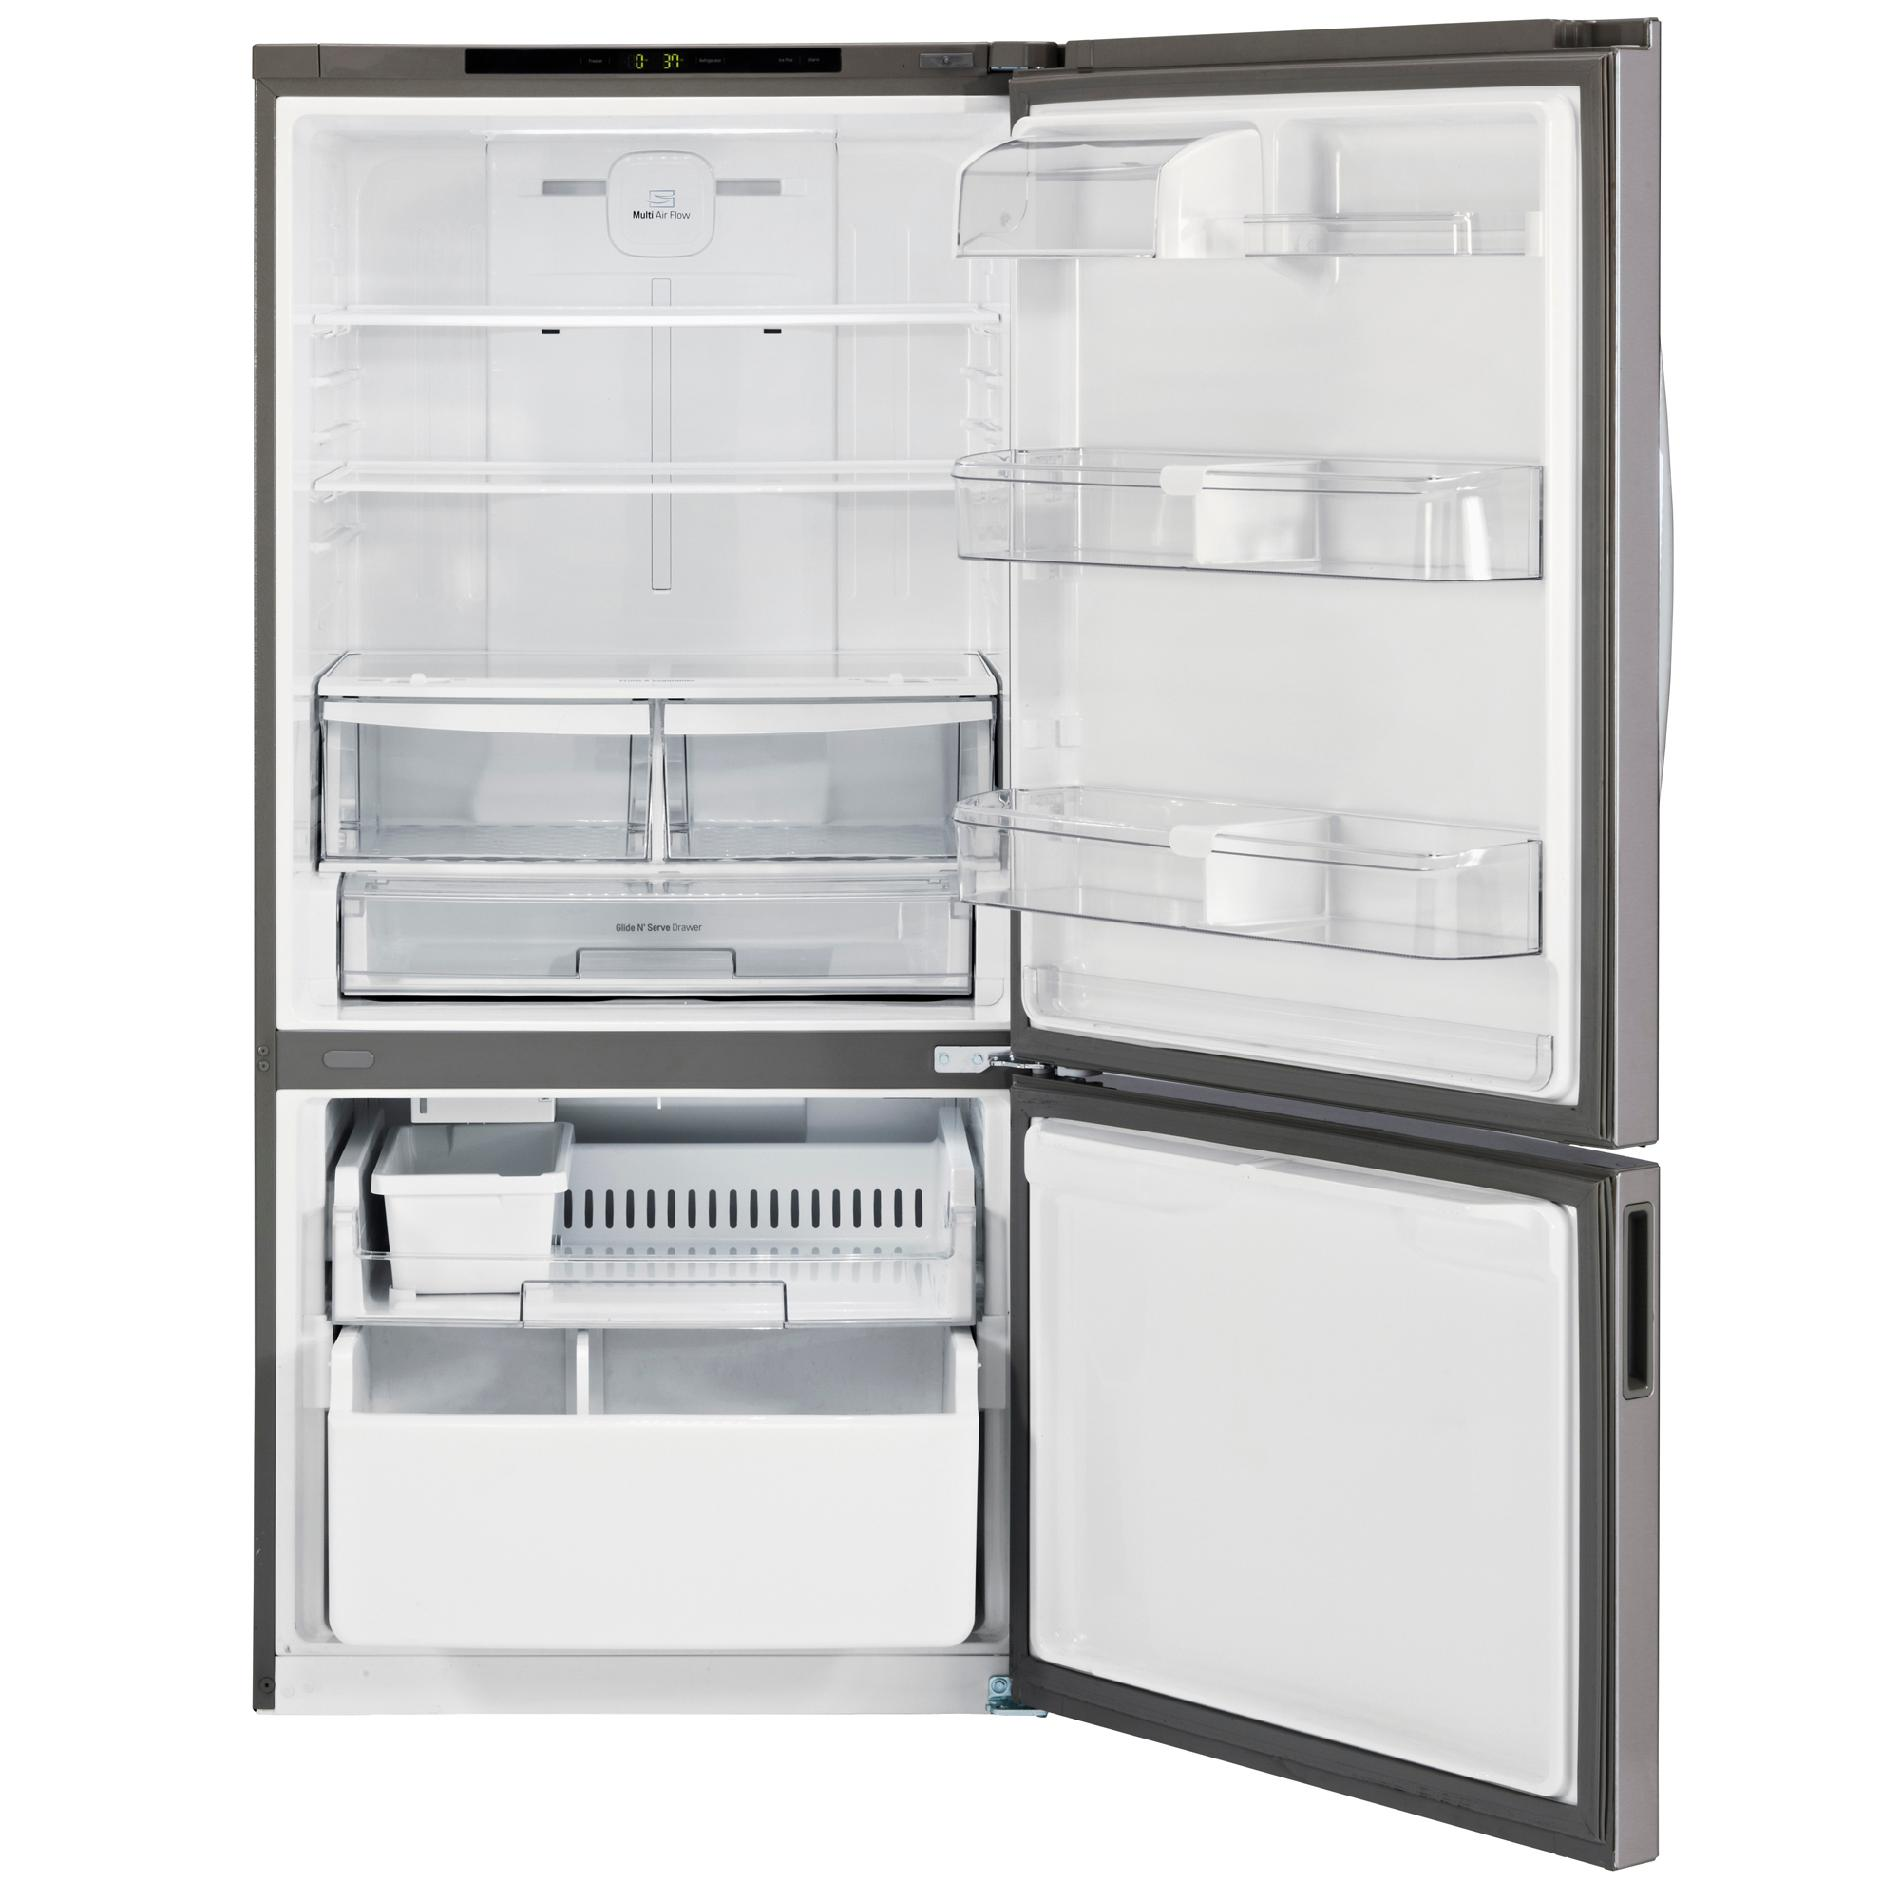 LG 24 cu.ft. Bottom-Freezer Refrigerator w/ Swing Door – Stainless